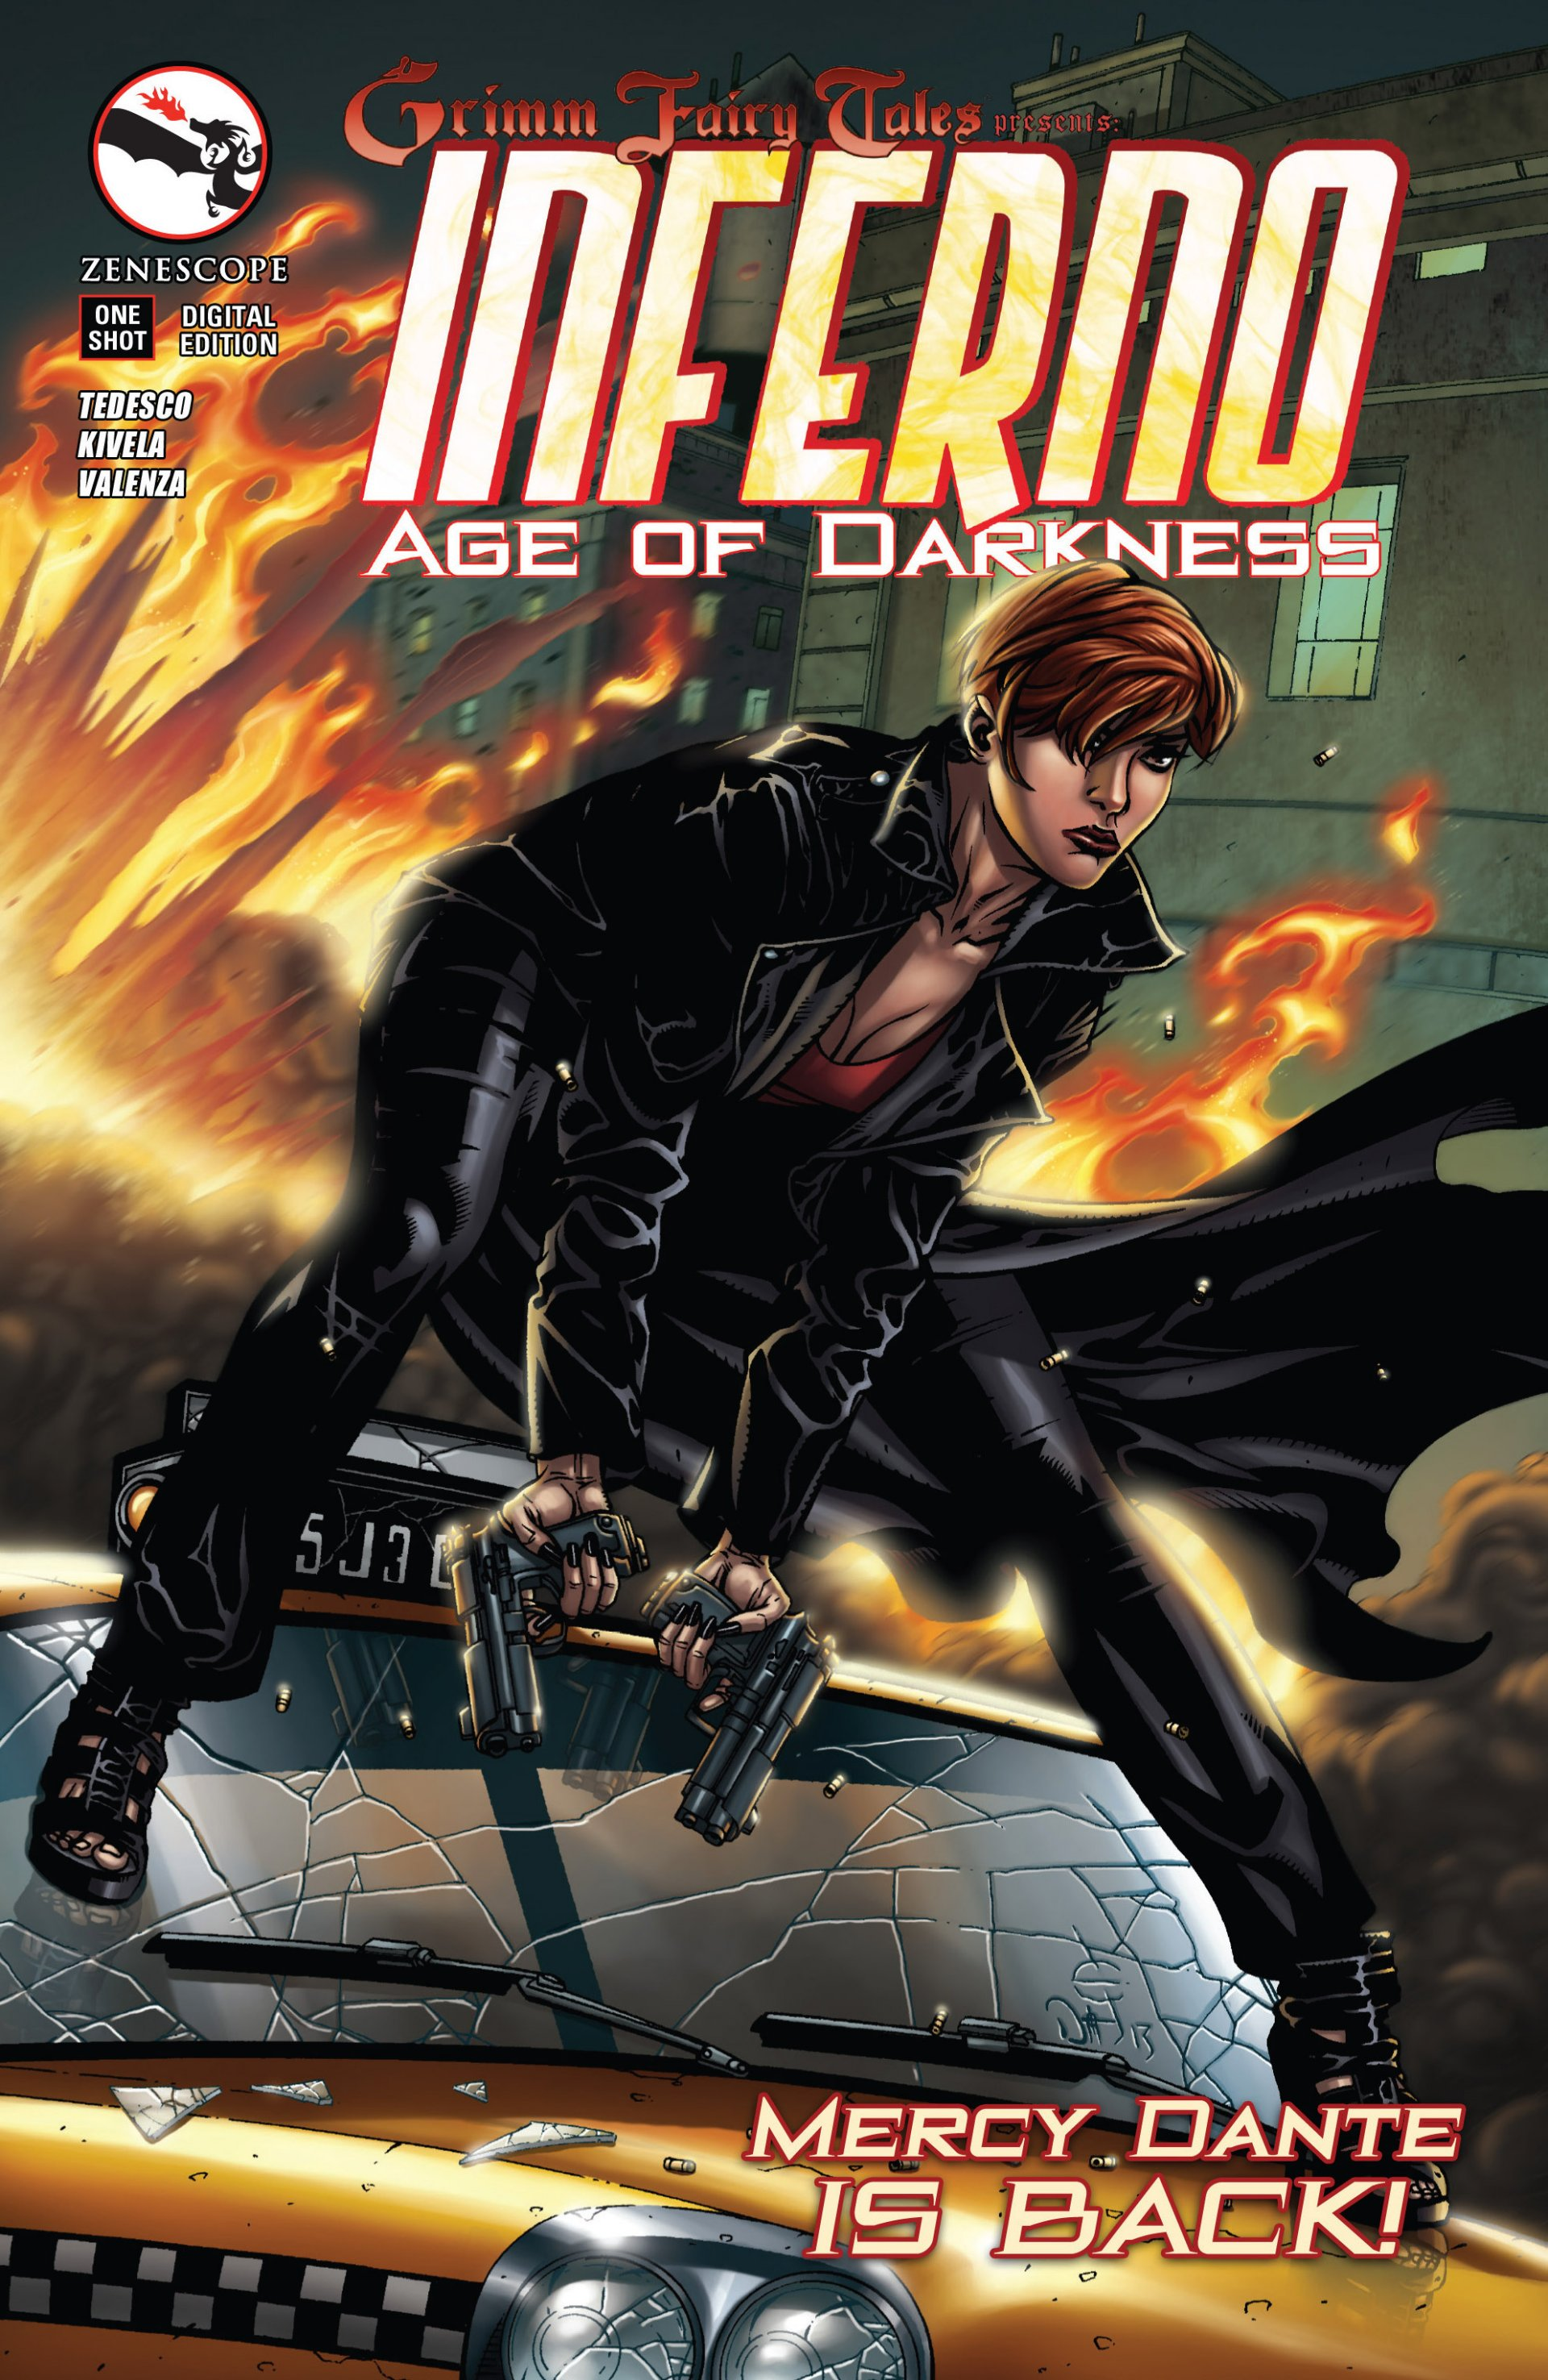 Read online Grimm Fairy Tales presents Inferno: Age of Darkness comic -  Issue # Full - 1